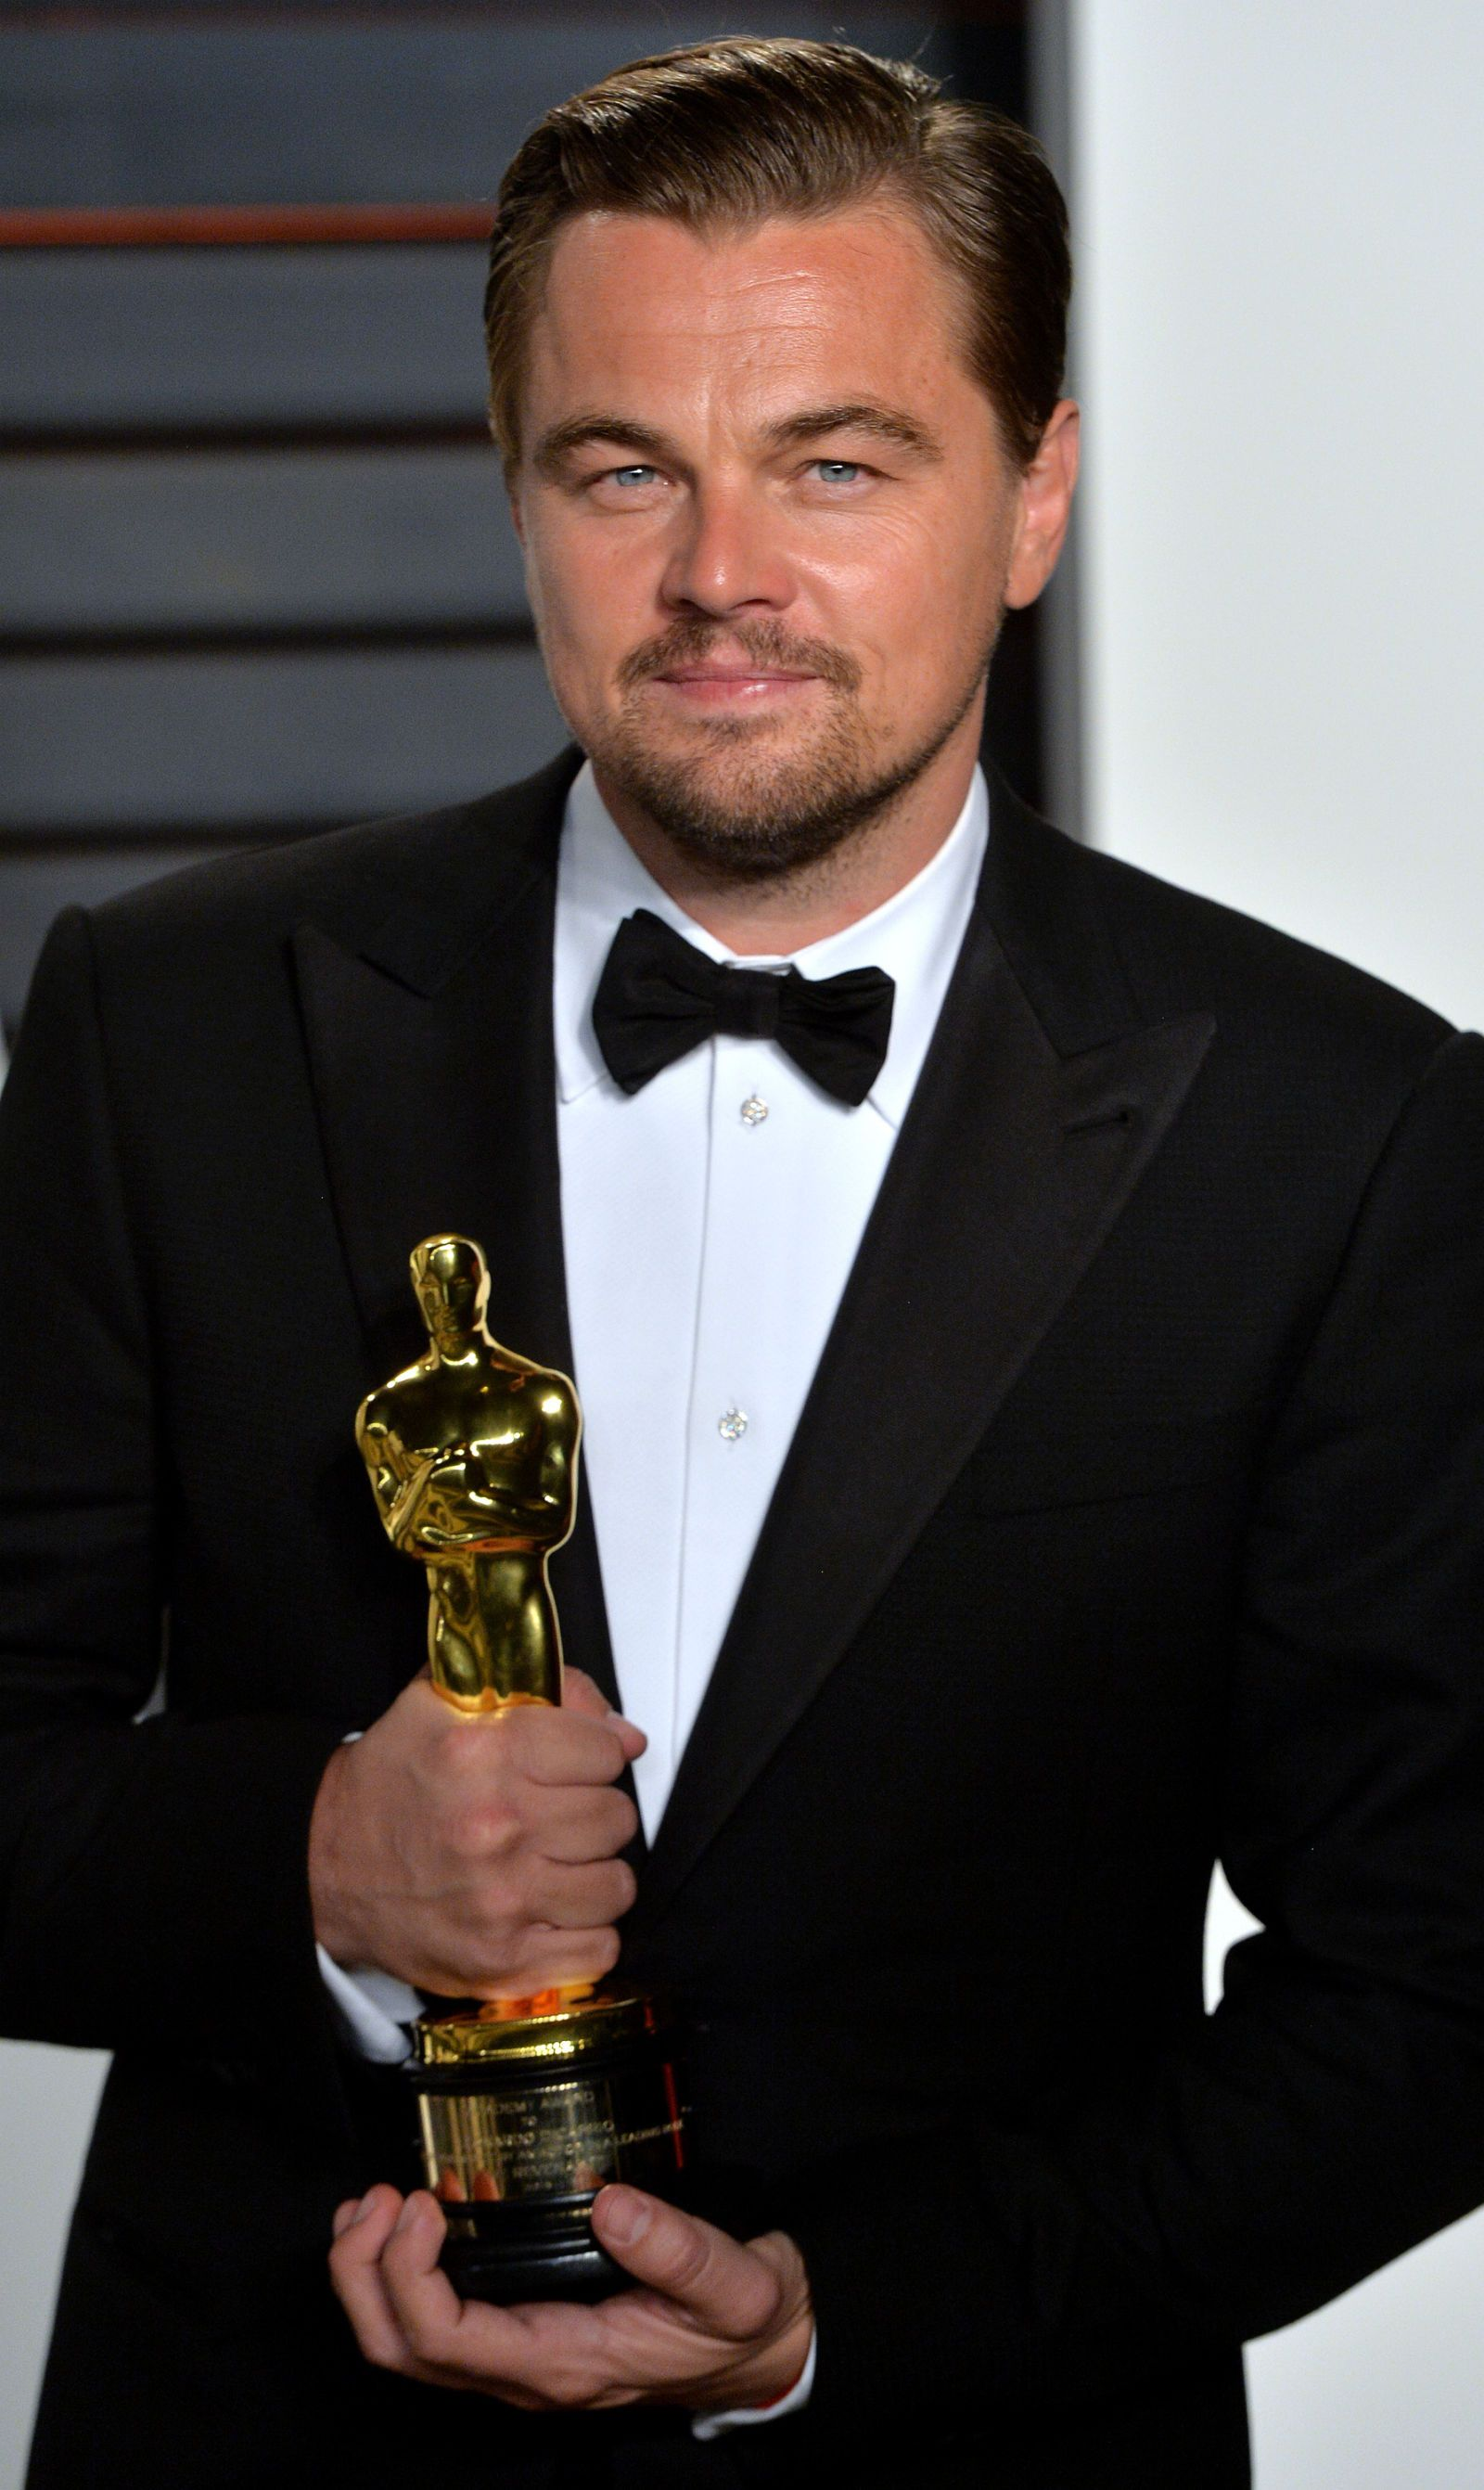 Watch Leo Get His VERY FIRST Oscar Statuette Engraved